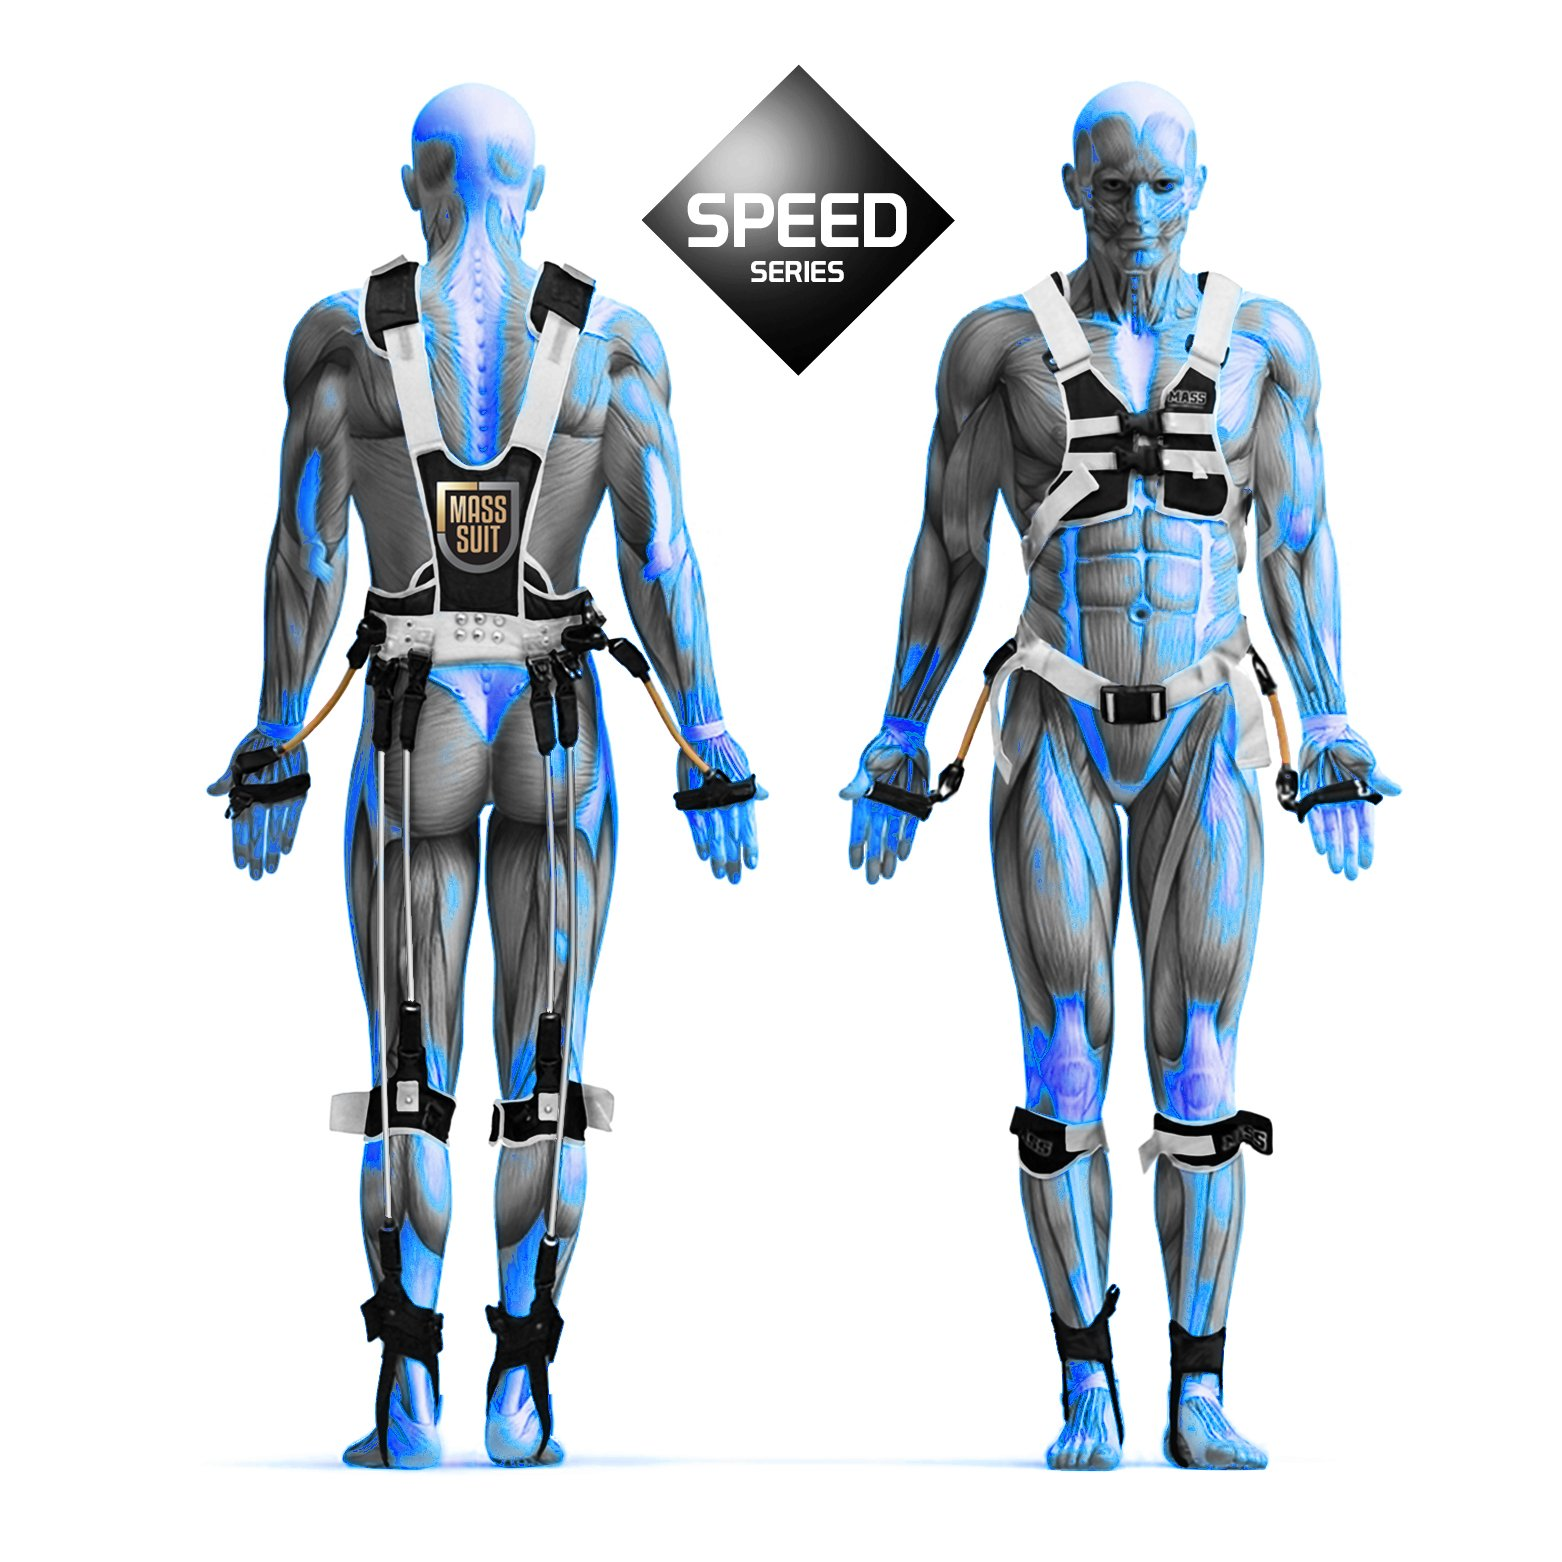 MASS Suit Speed Series by Juke Performance - Professional grade athletic speed training system - Full body resistance exercise equipment - Athletic sports system for football, basketball & Soccer. by MASS SUIT